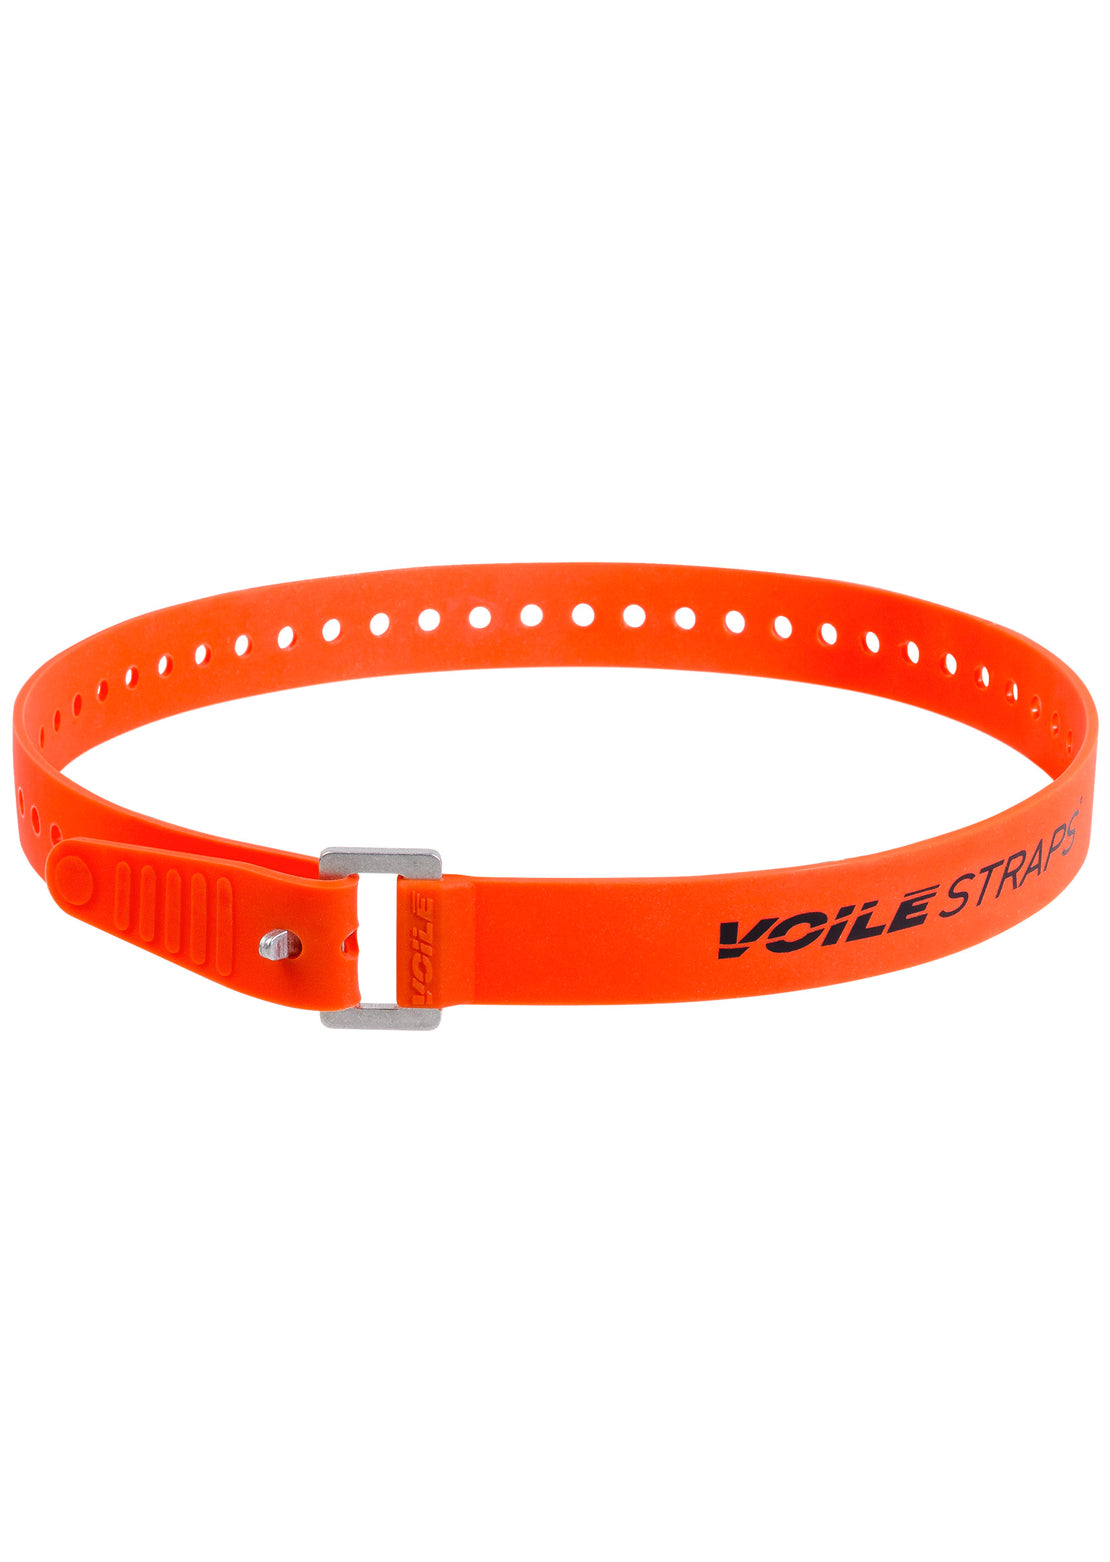 Voilé 32'' Strap Orange